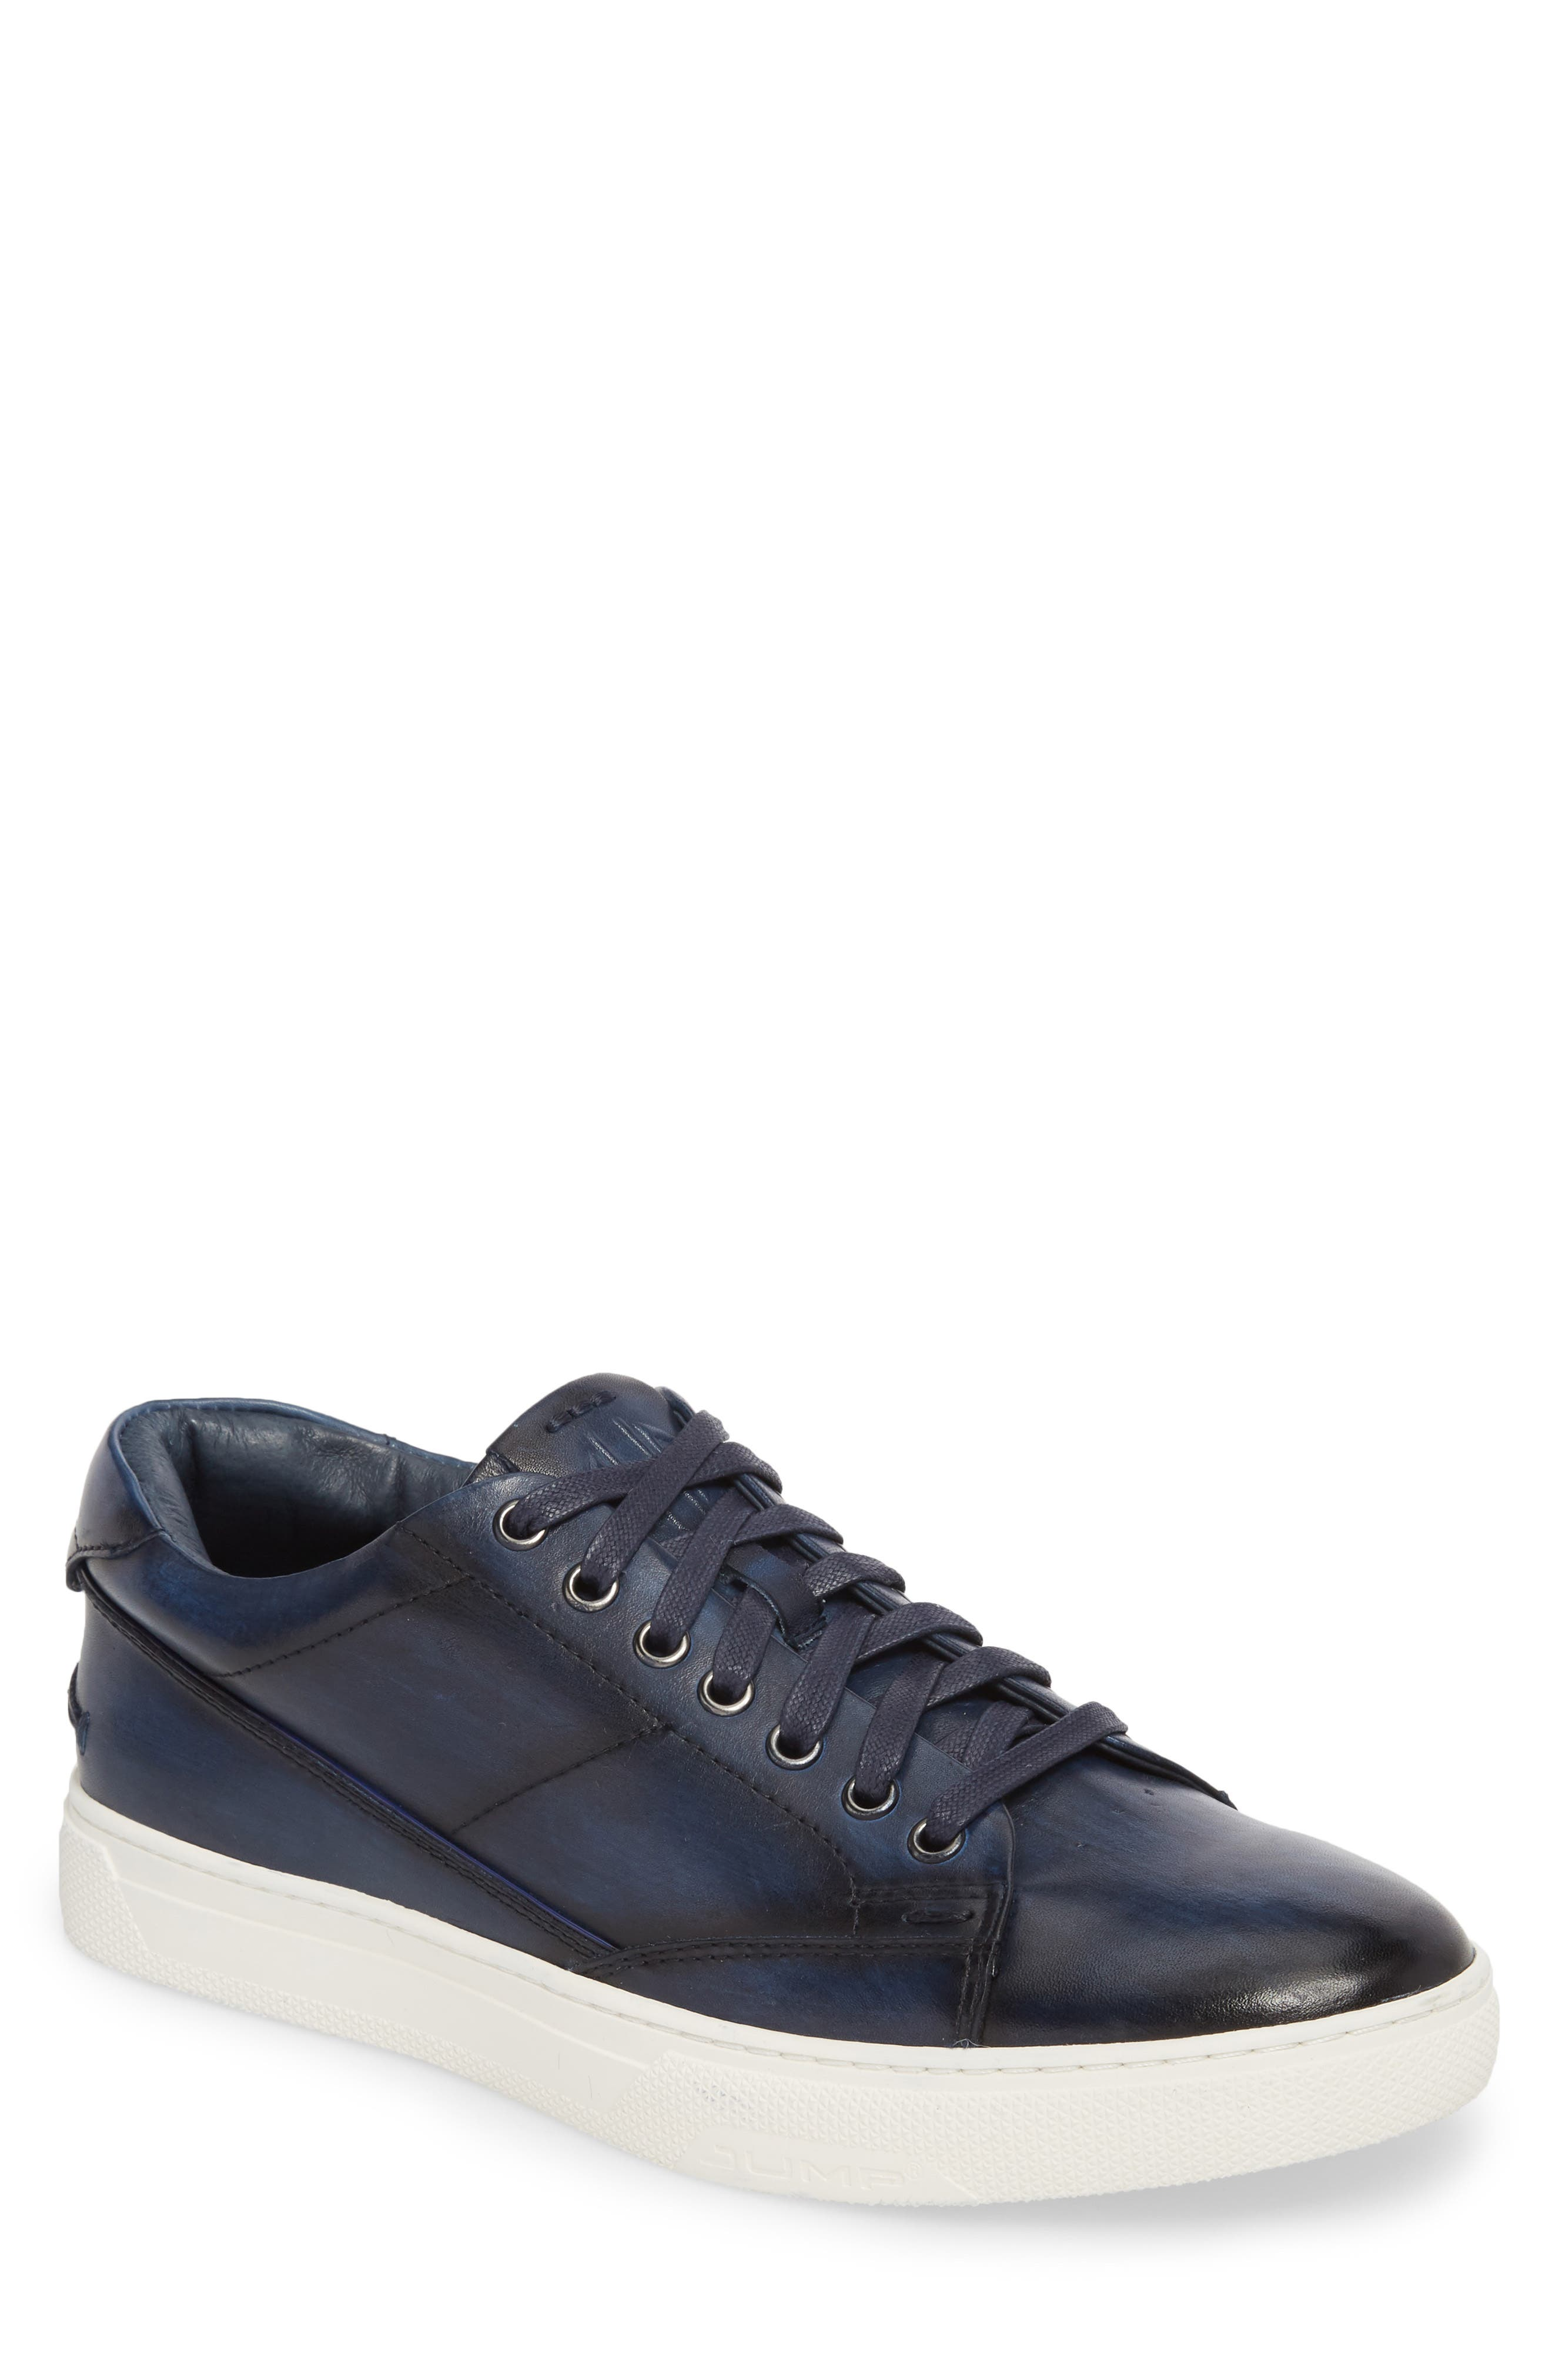 Sweeney Low Top Sneaker,                         Main,                         color, NAVY LEATHER